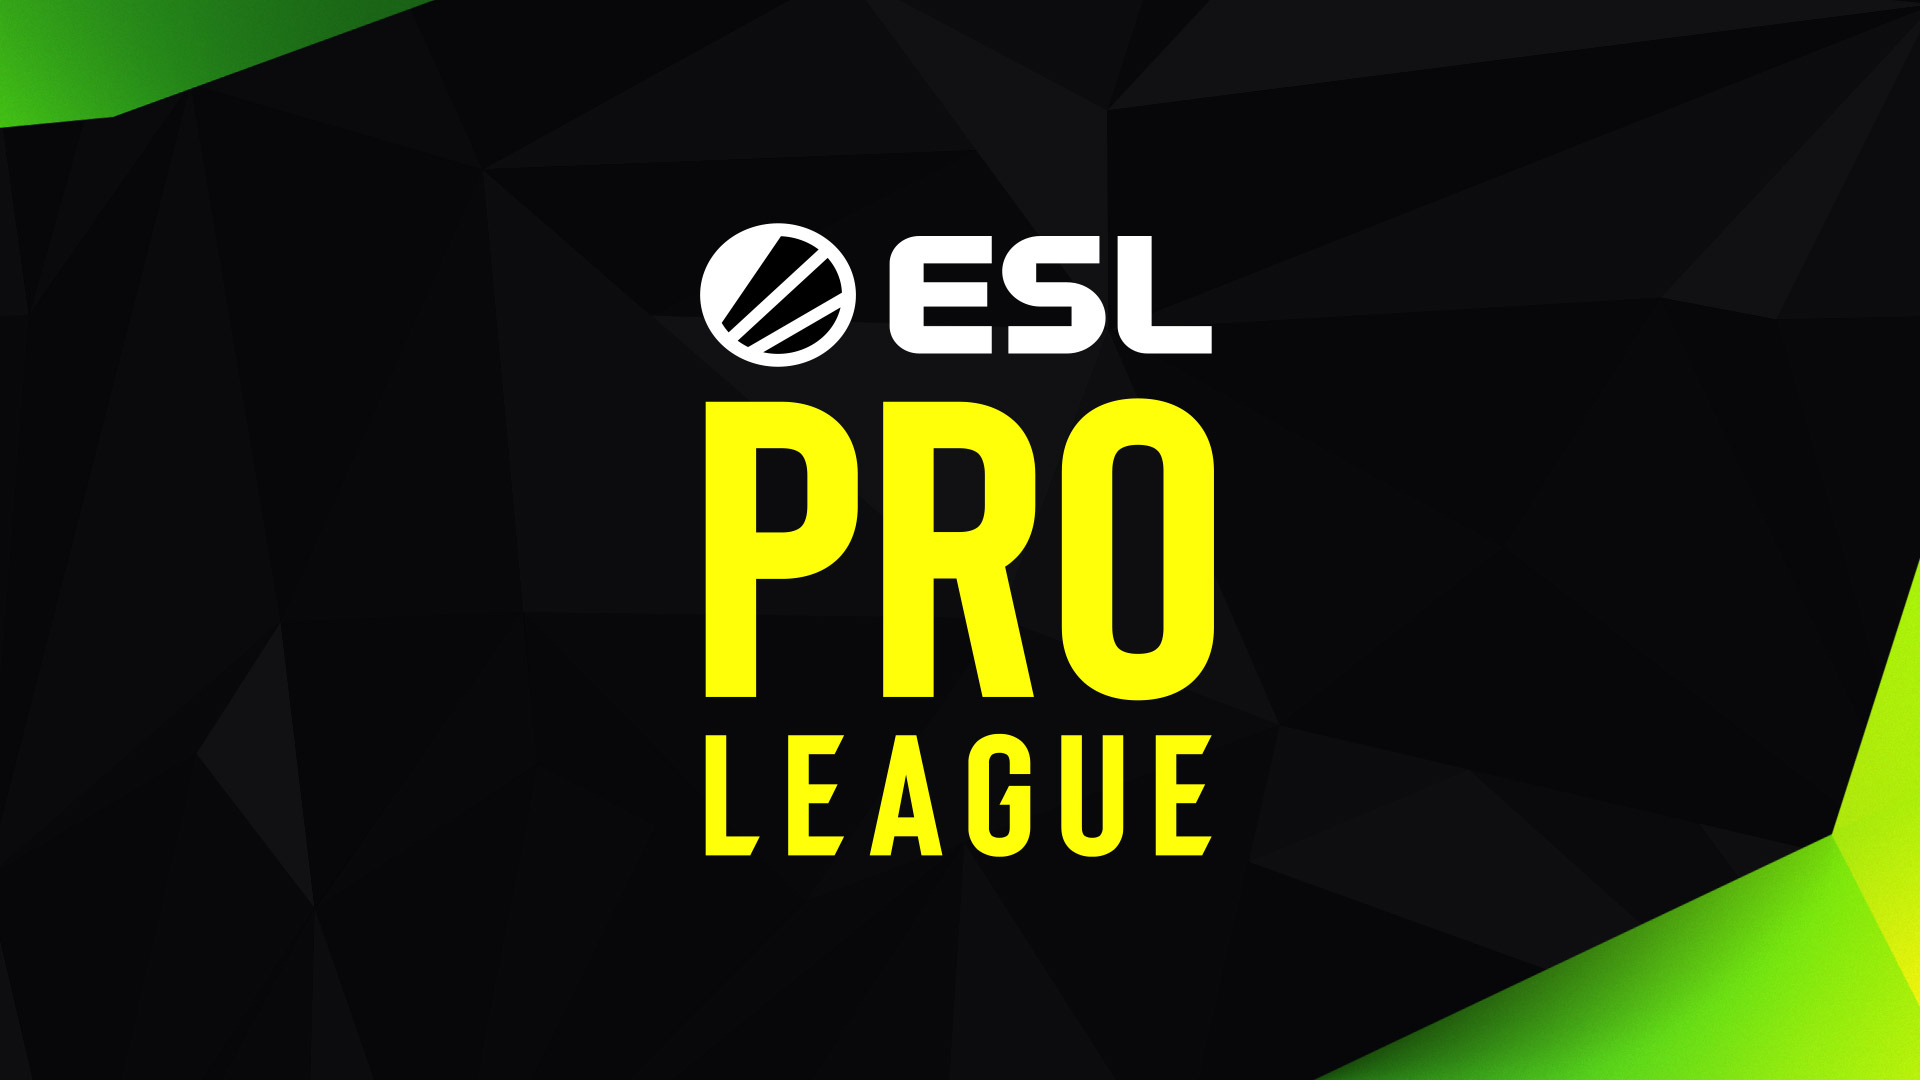 ESL Pro League Launches First of its Type Player Council